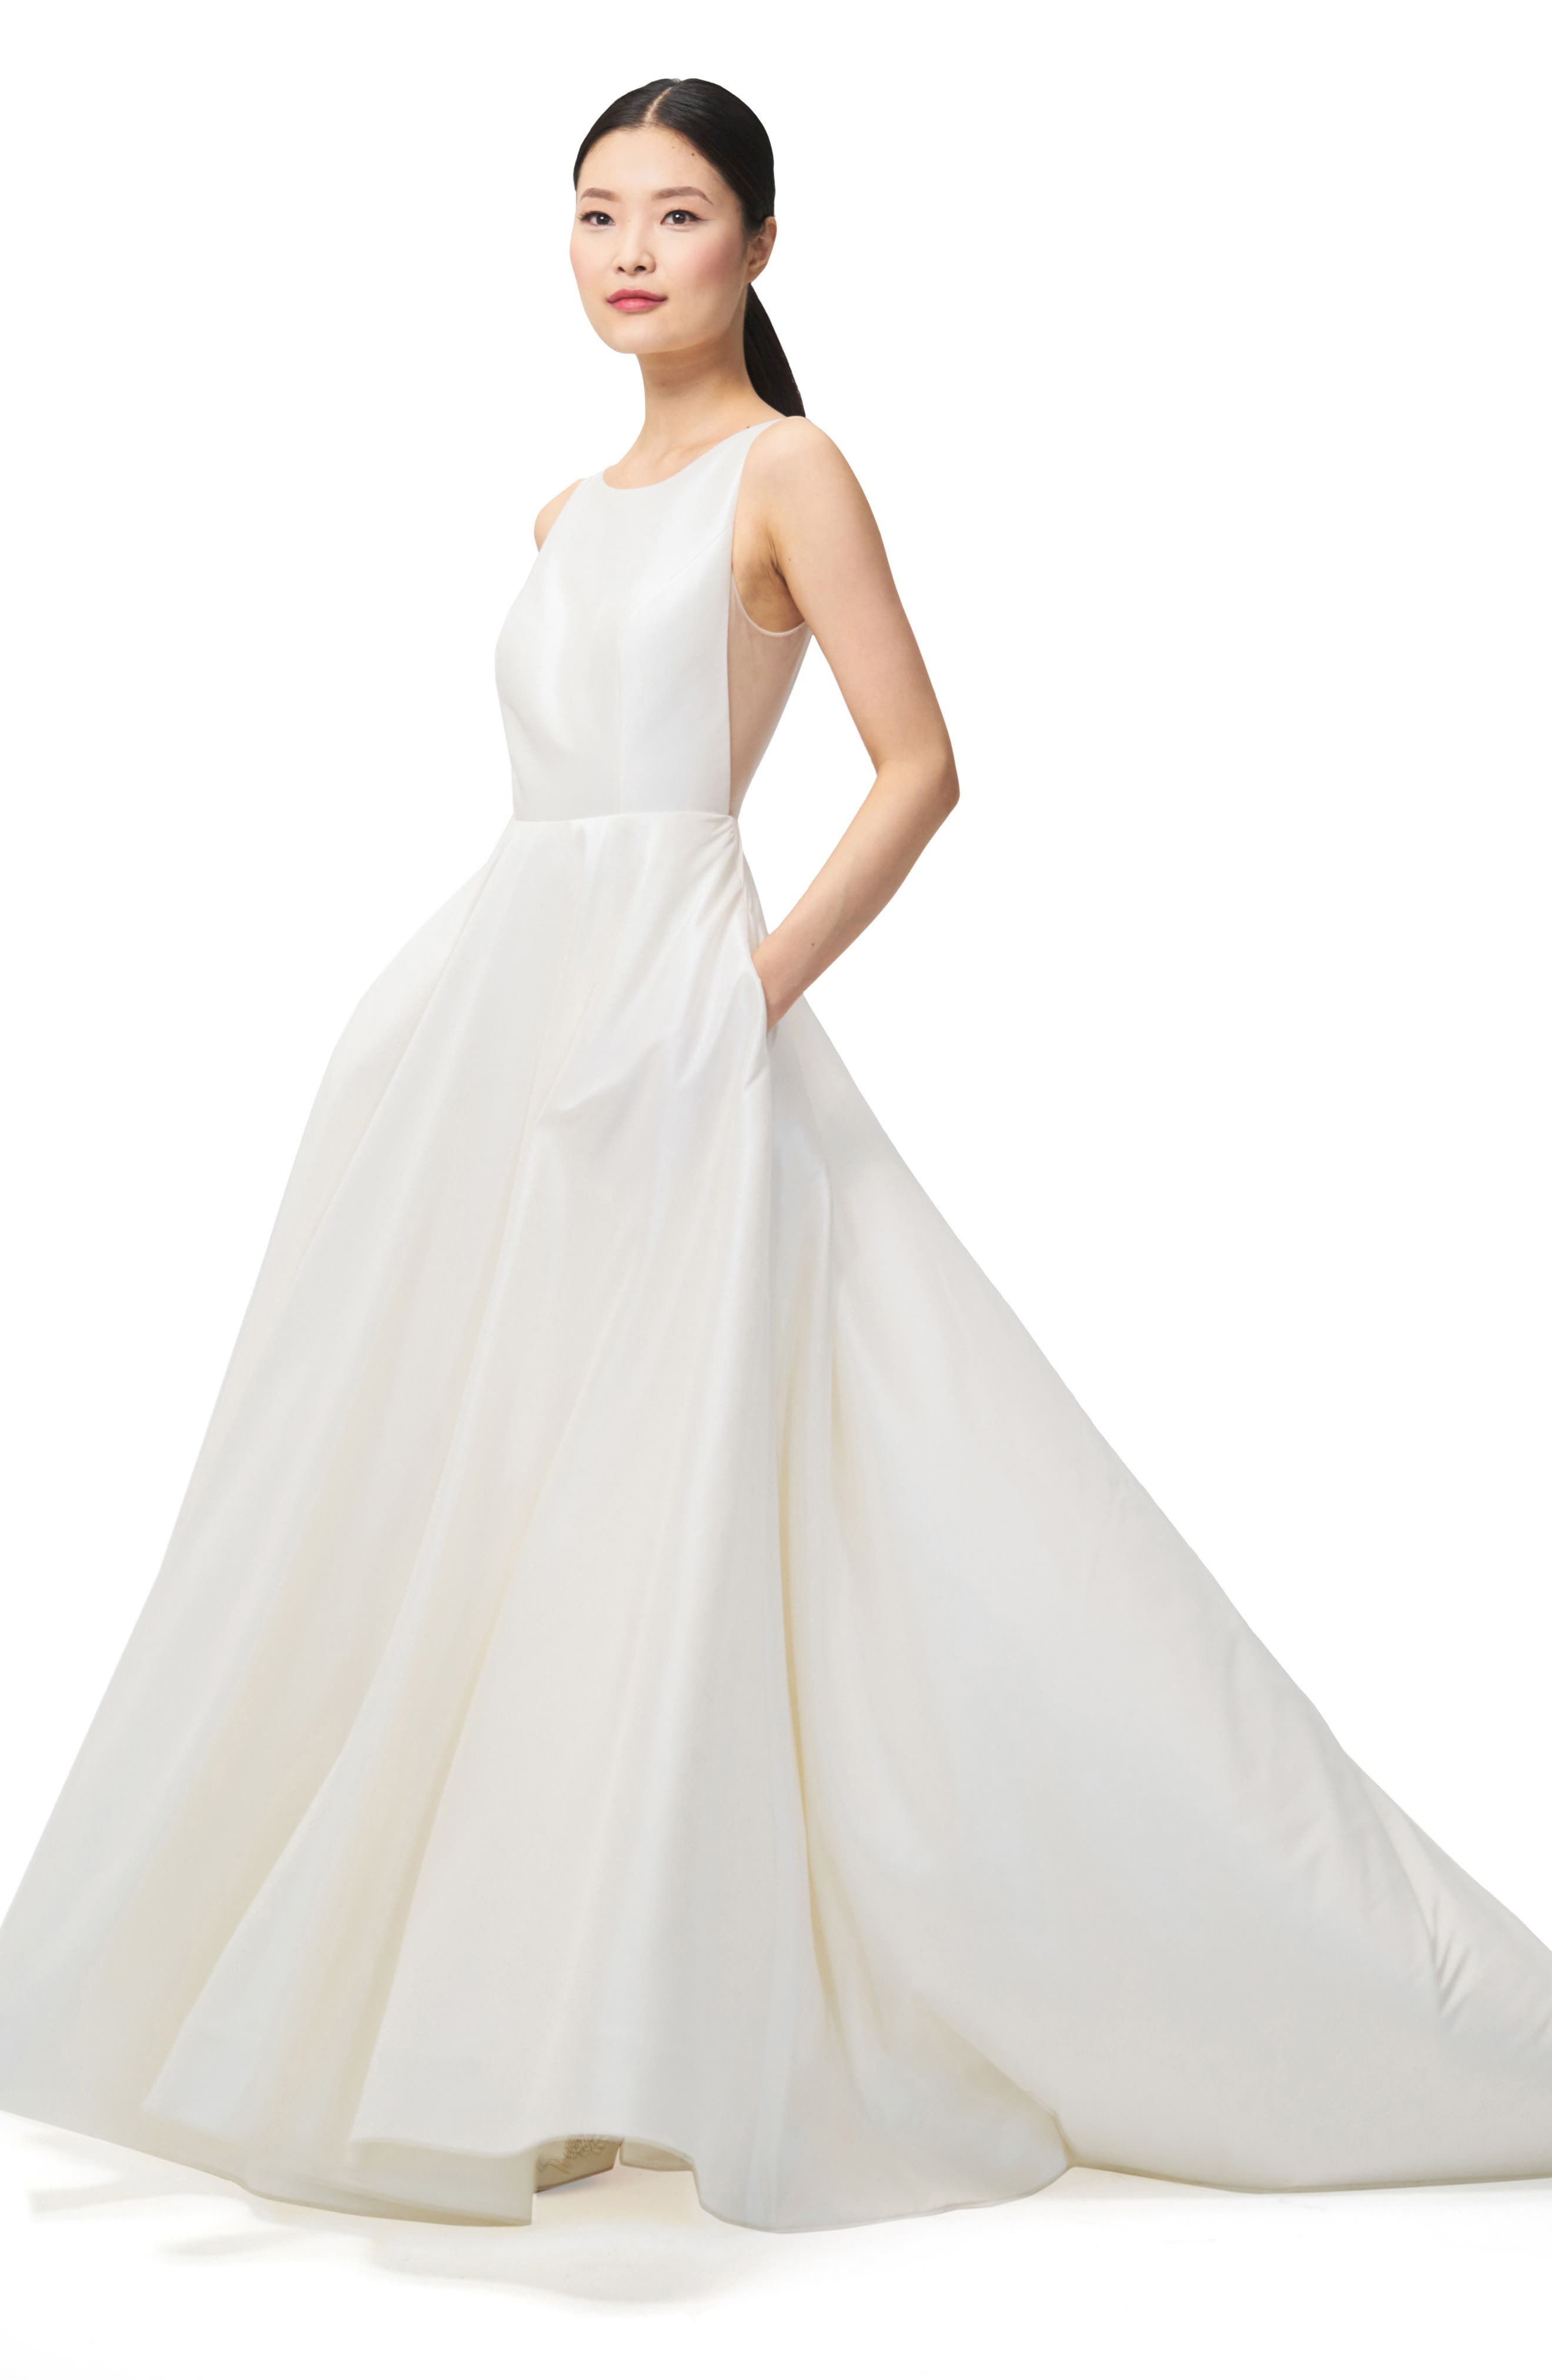 Womens wedding dresses bridal gowns nordstrom jenny yoo ashton plunge back a line gown ombrellifo Gallery